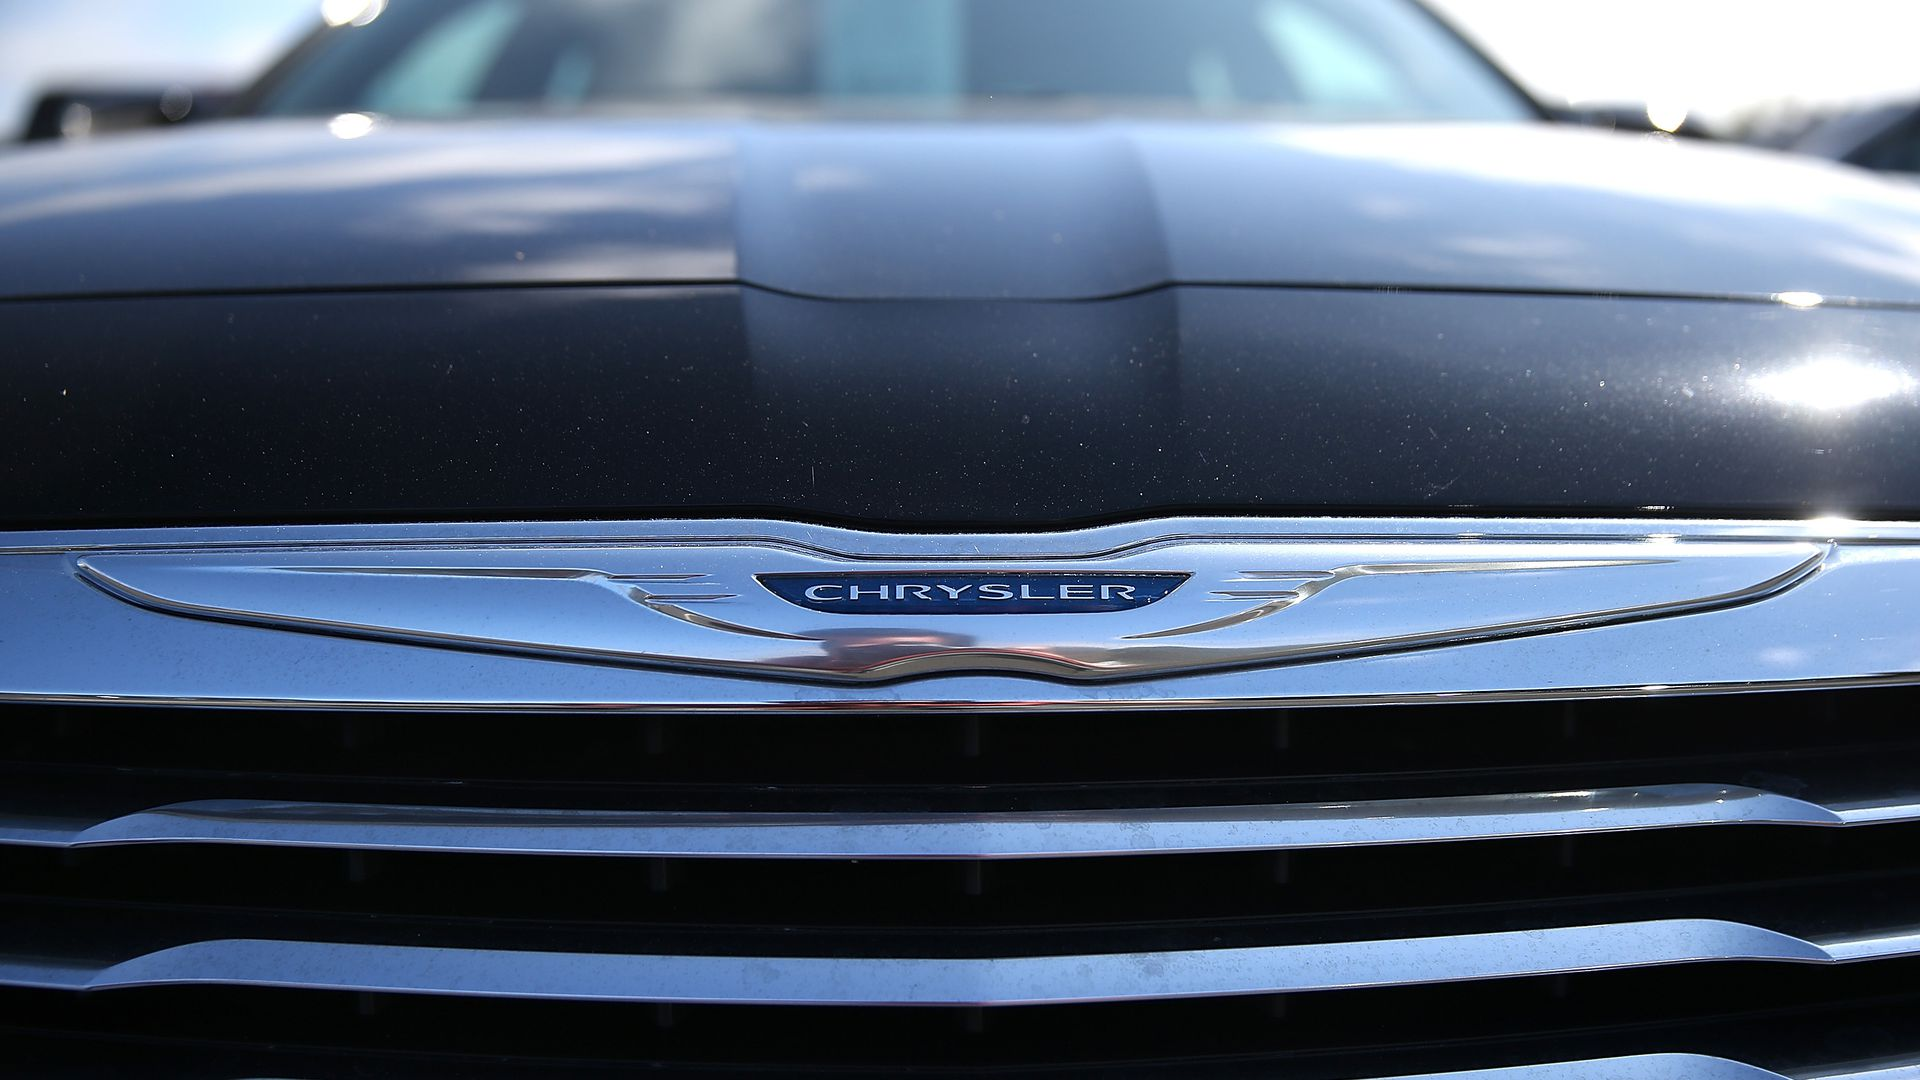 Chrysler SUV grill.